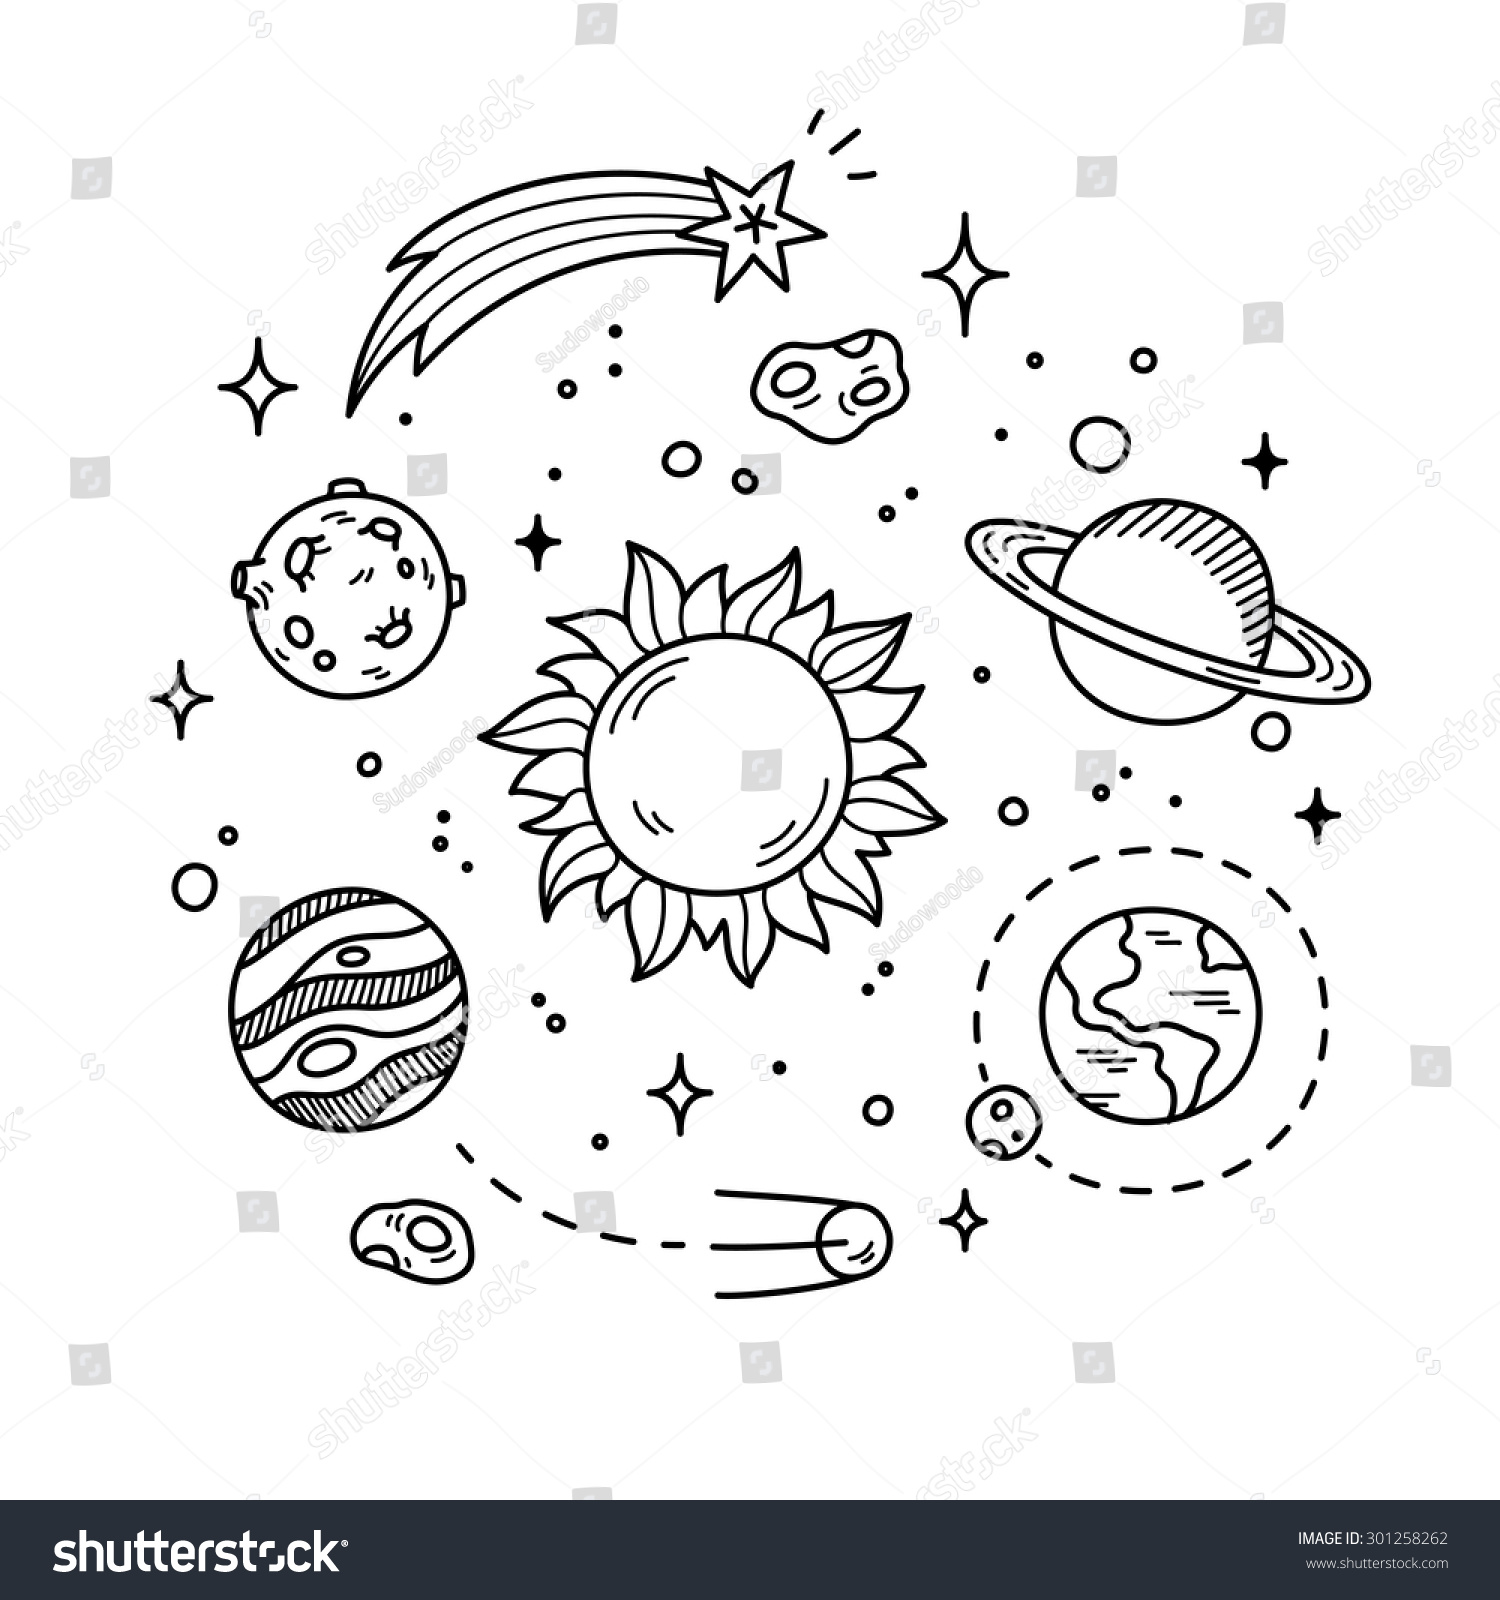 Line Art Space : Hand drawn solar system sun planets stock vector